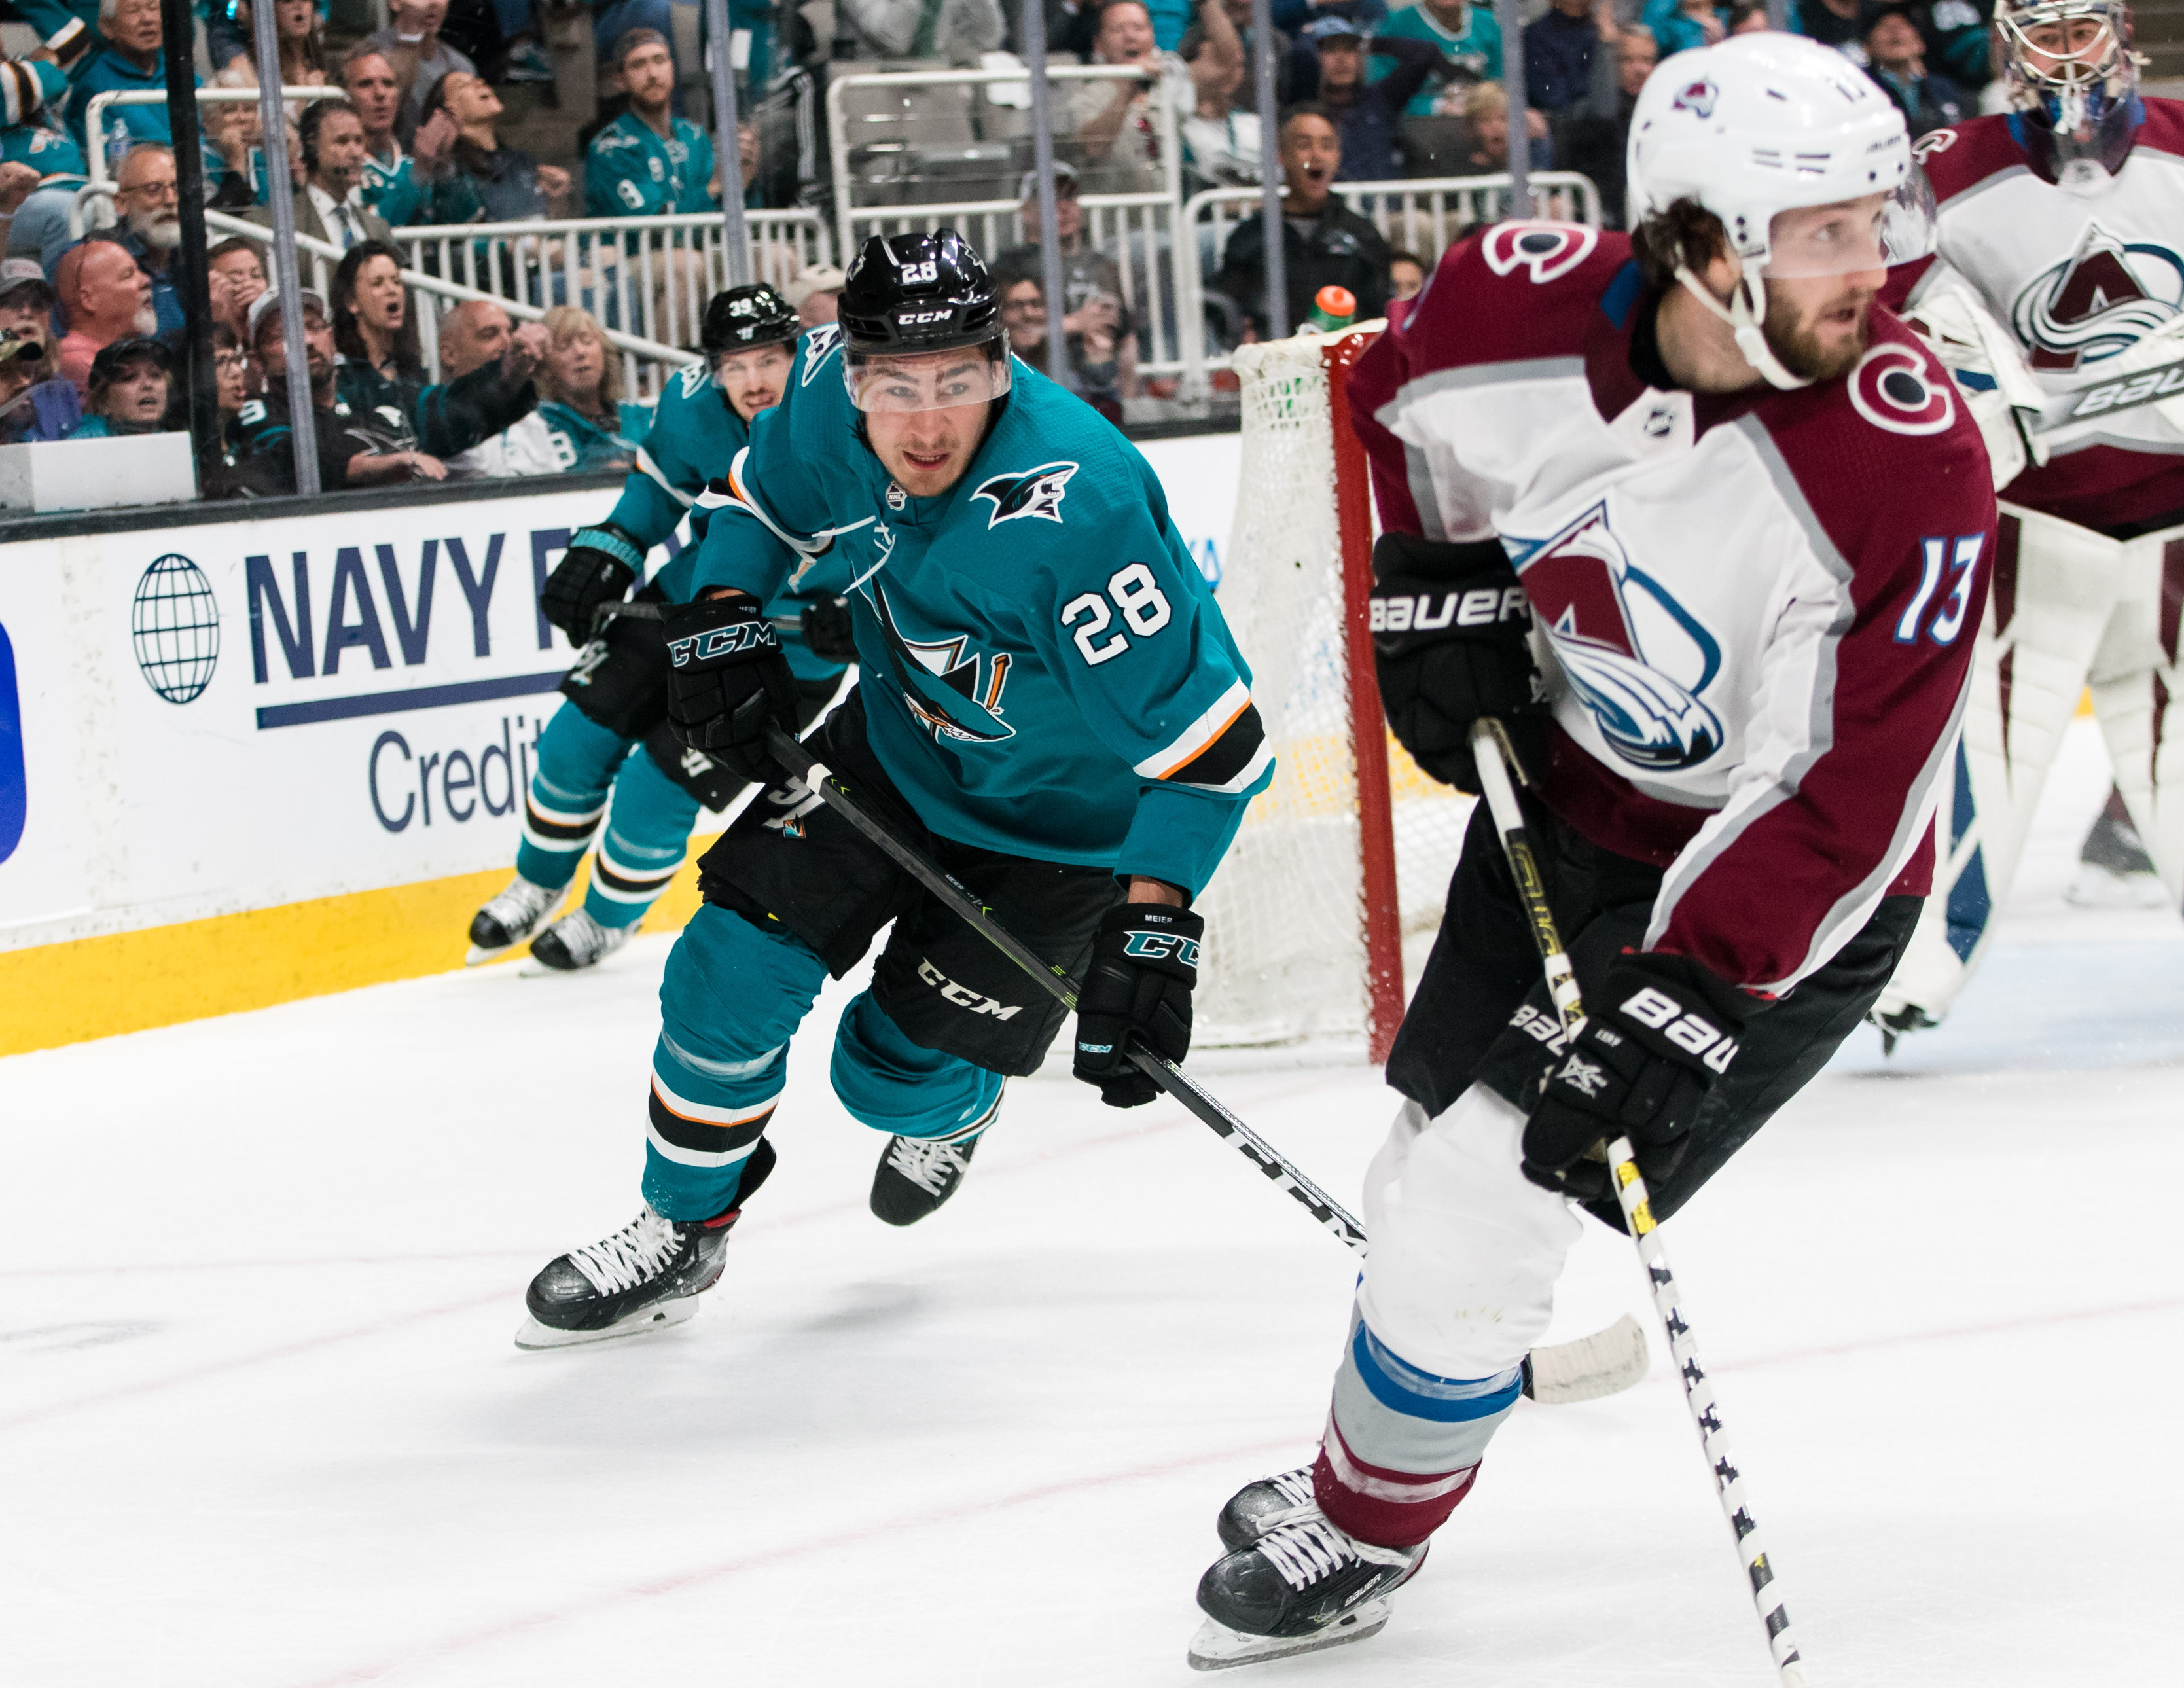 San Jose Sharks right wing Timo Meier (28) follows Colorado Avalanche center Alexander Kerfoot (13) in the first period of game two of the second round of the 2019 Stanley Cup Playoffs at SAP Center at San Jose.